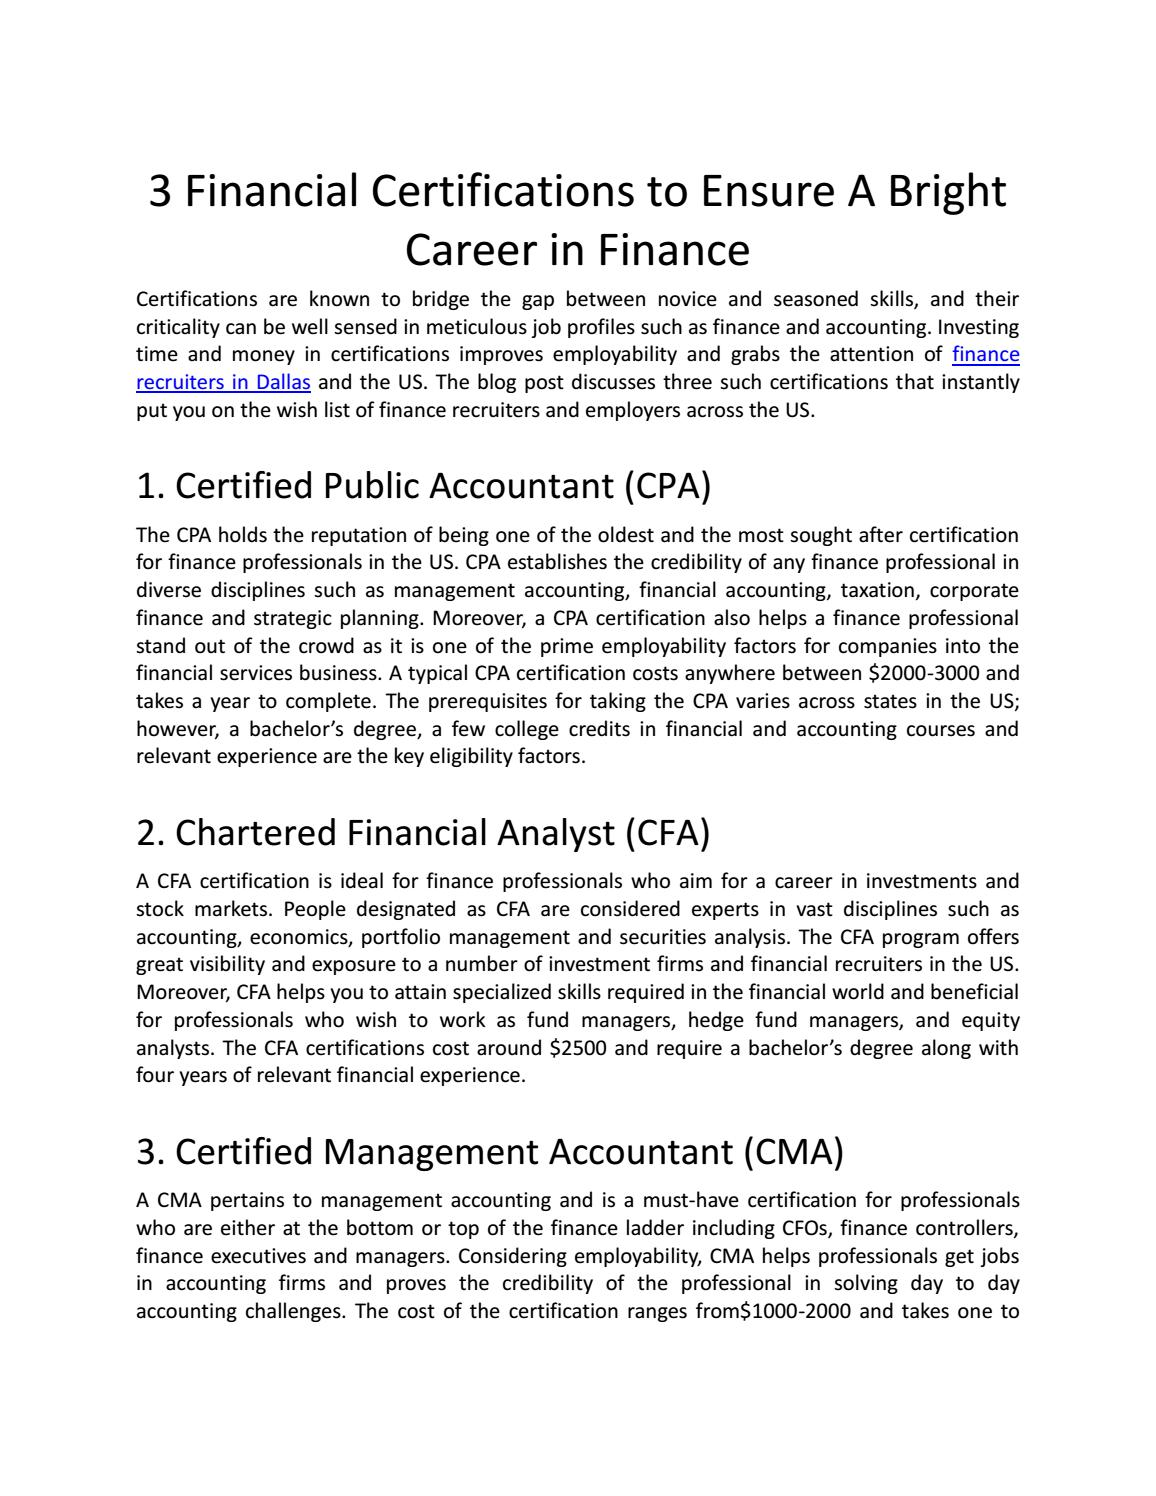 3 Financial Certifications To Ensure A Bright Career In Finance By